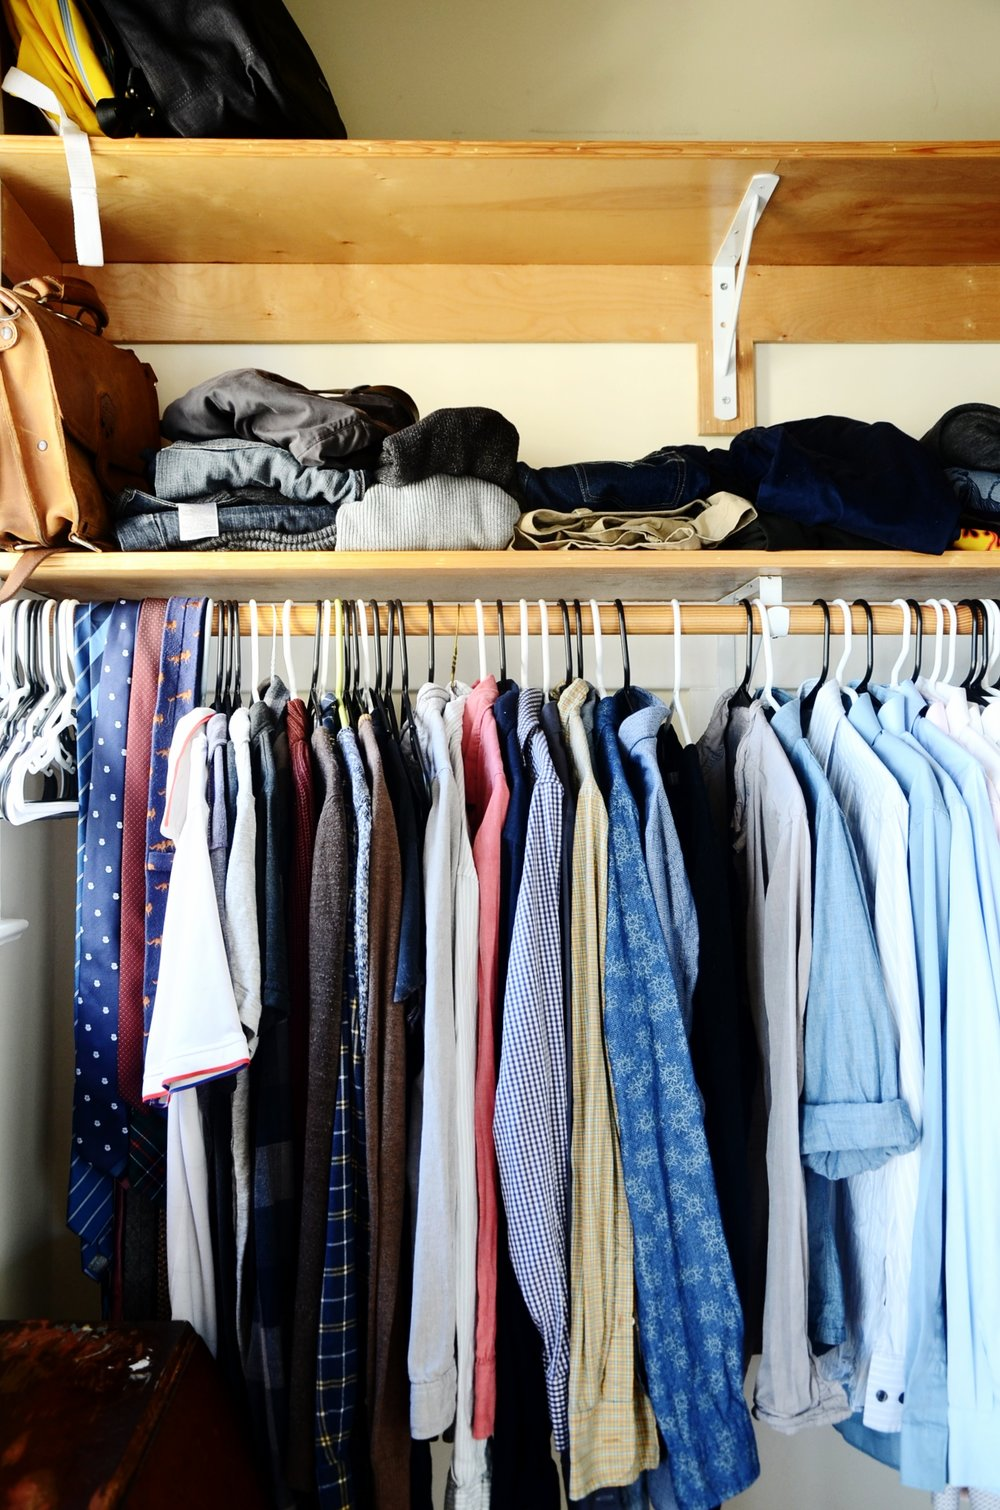 All the closet space!